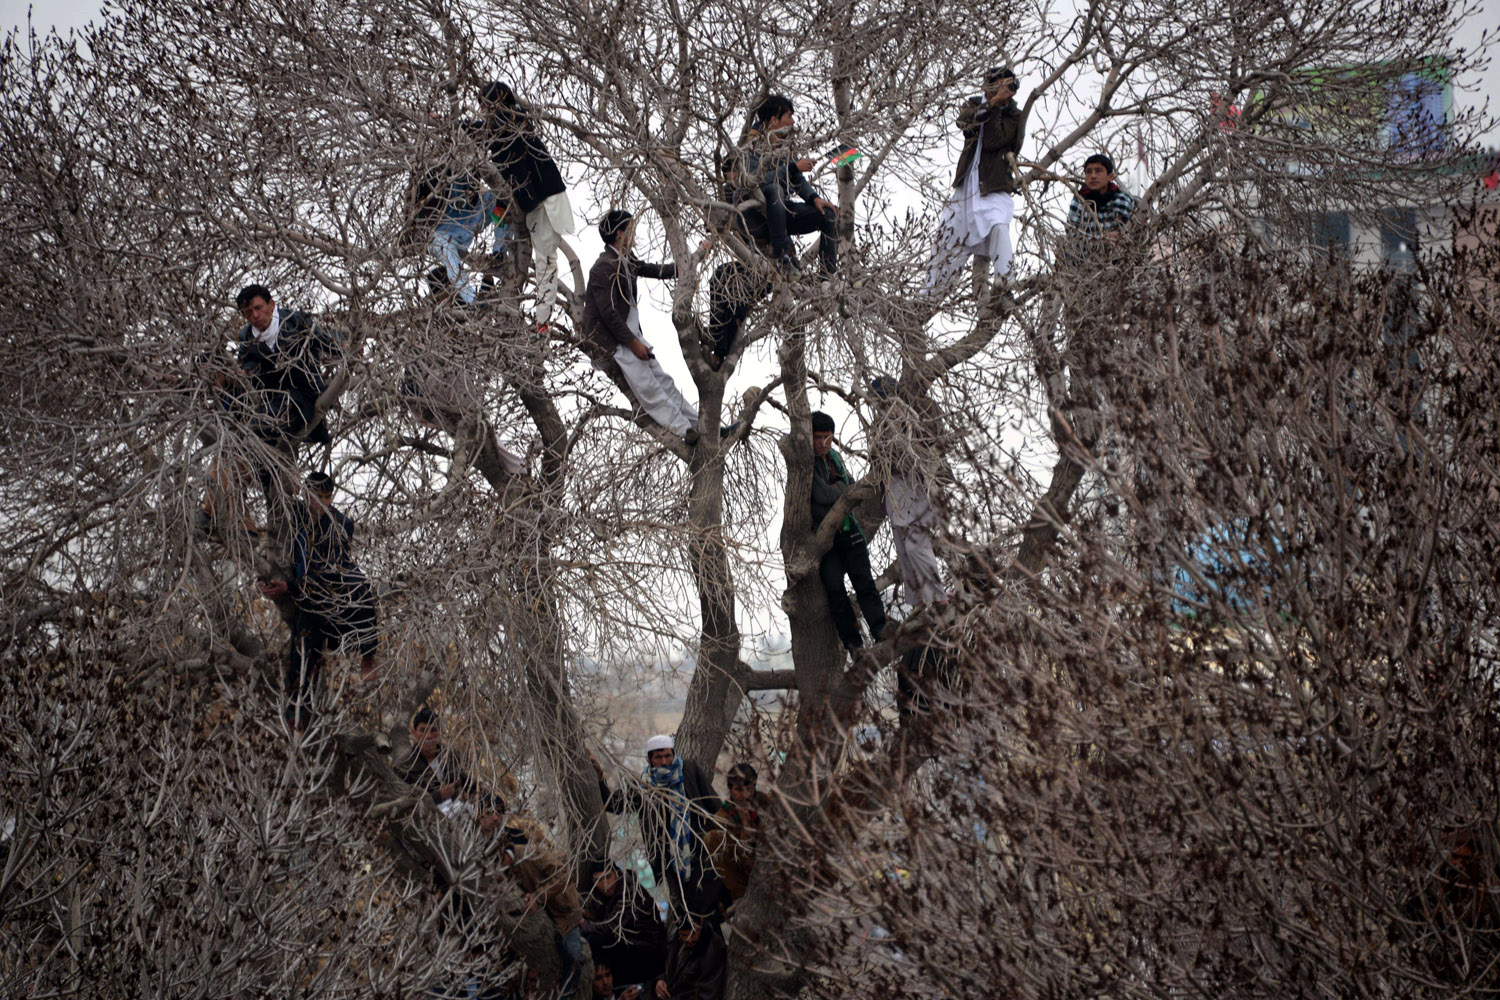 Mar. 21, 2014.                                Afghan men look on from tree branches while other revelers gather near the Hazrat-e-Ali shrine for Nowruz festivities which marks the Afghan new year in Mazari-i-Sharif.